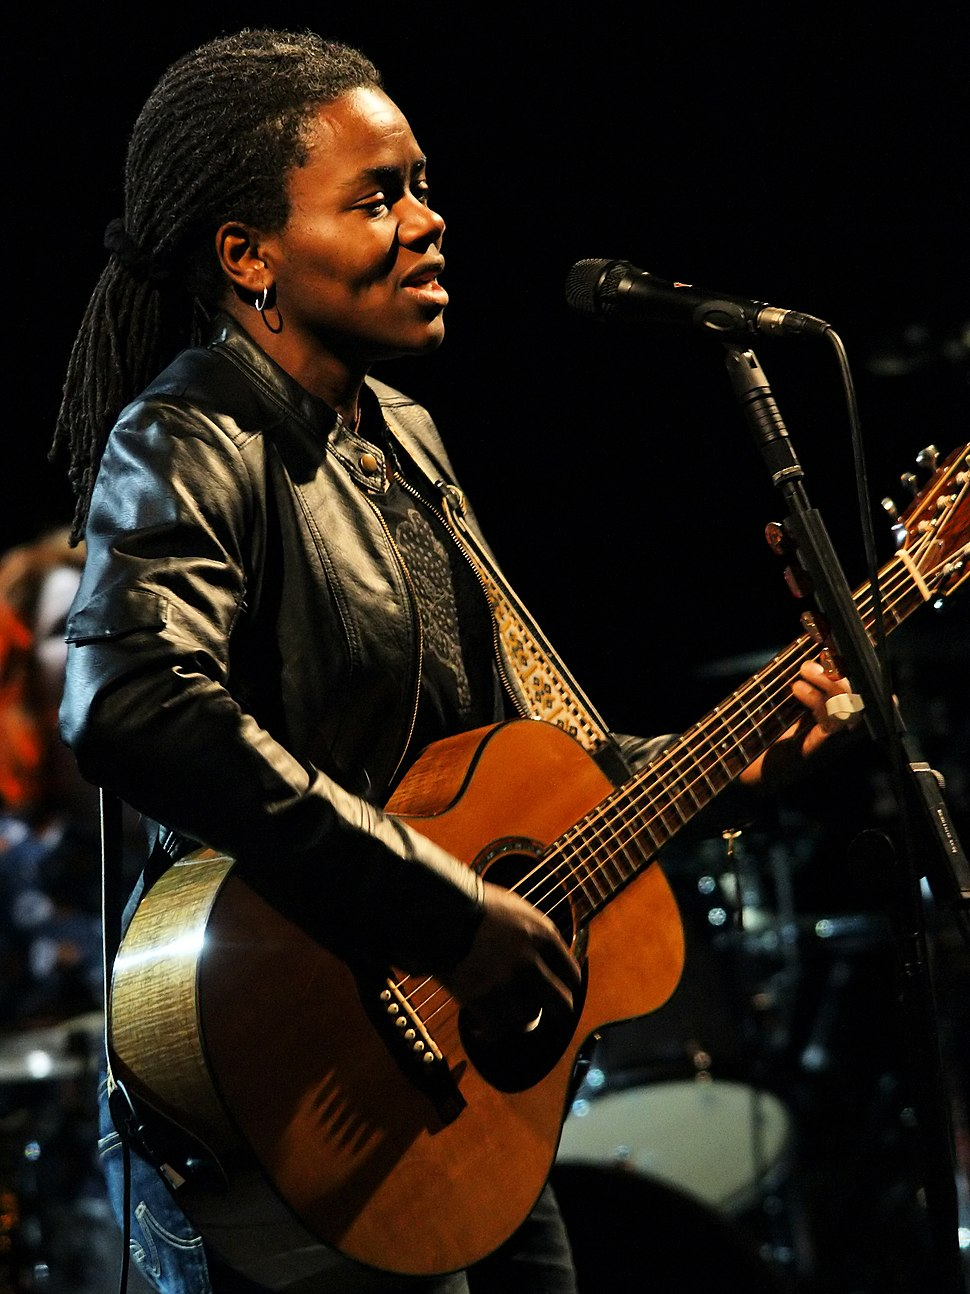 A woman with dreadlocks standing behind a microphone stand. She is wearing a leather jacket and playing a guitar.